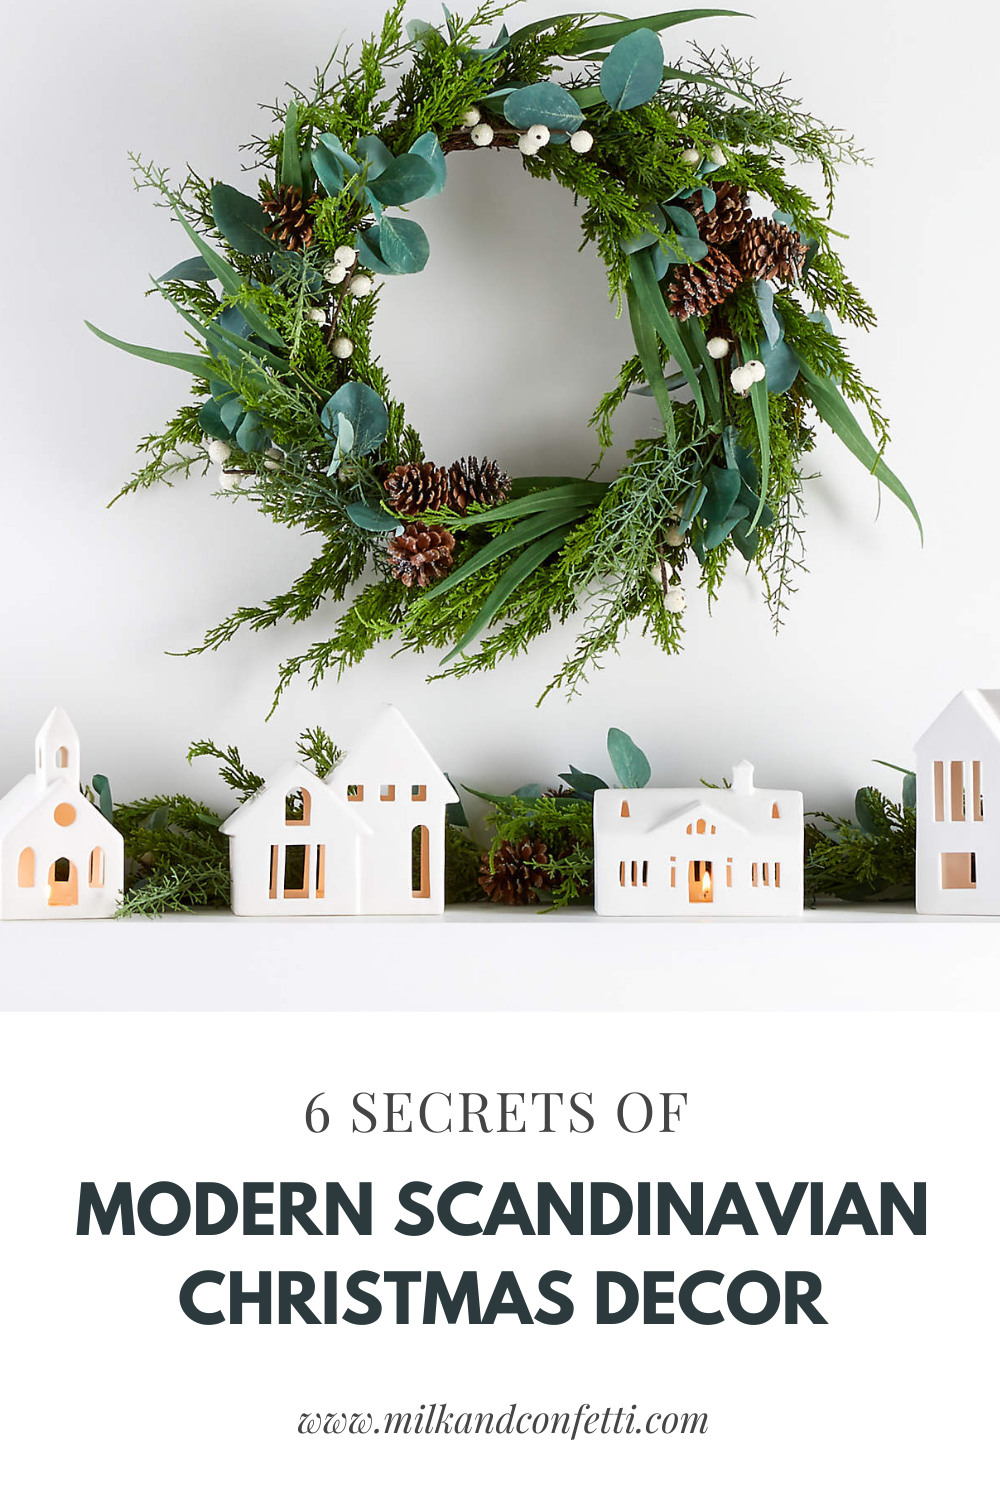 A simple and modern wreath with white berries and pine cones is hung above a fireplace mantel lined with white Scandinavian houses and garland for the Christmas holidays.